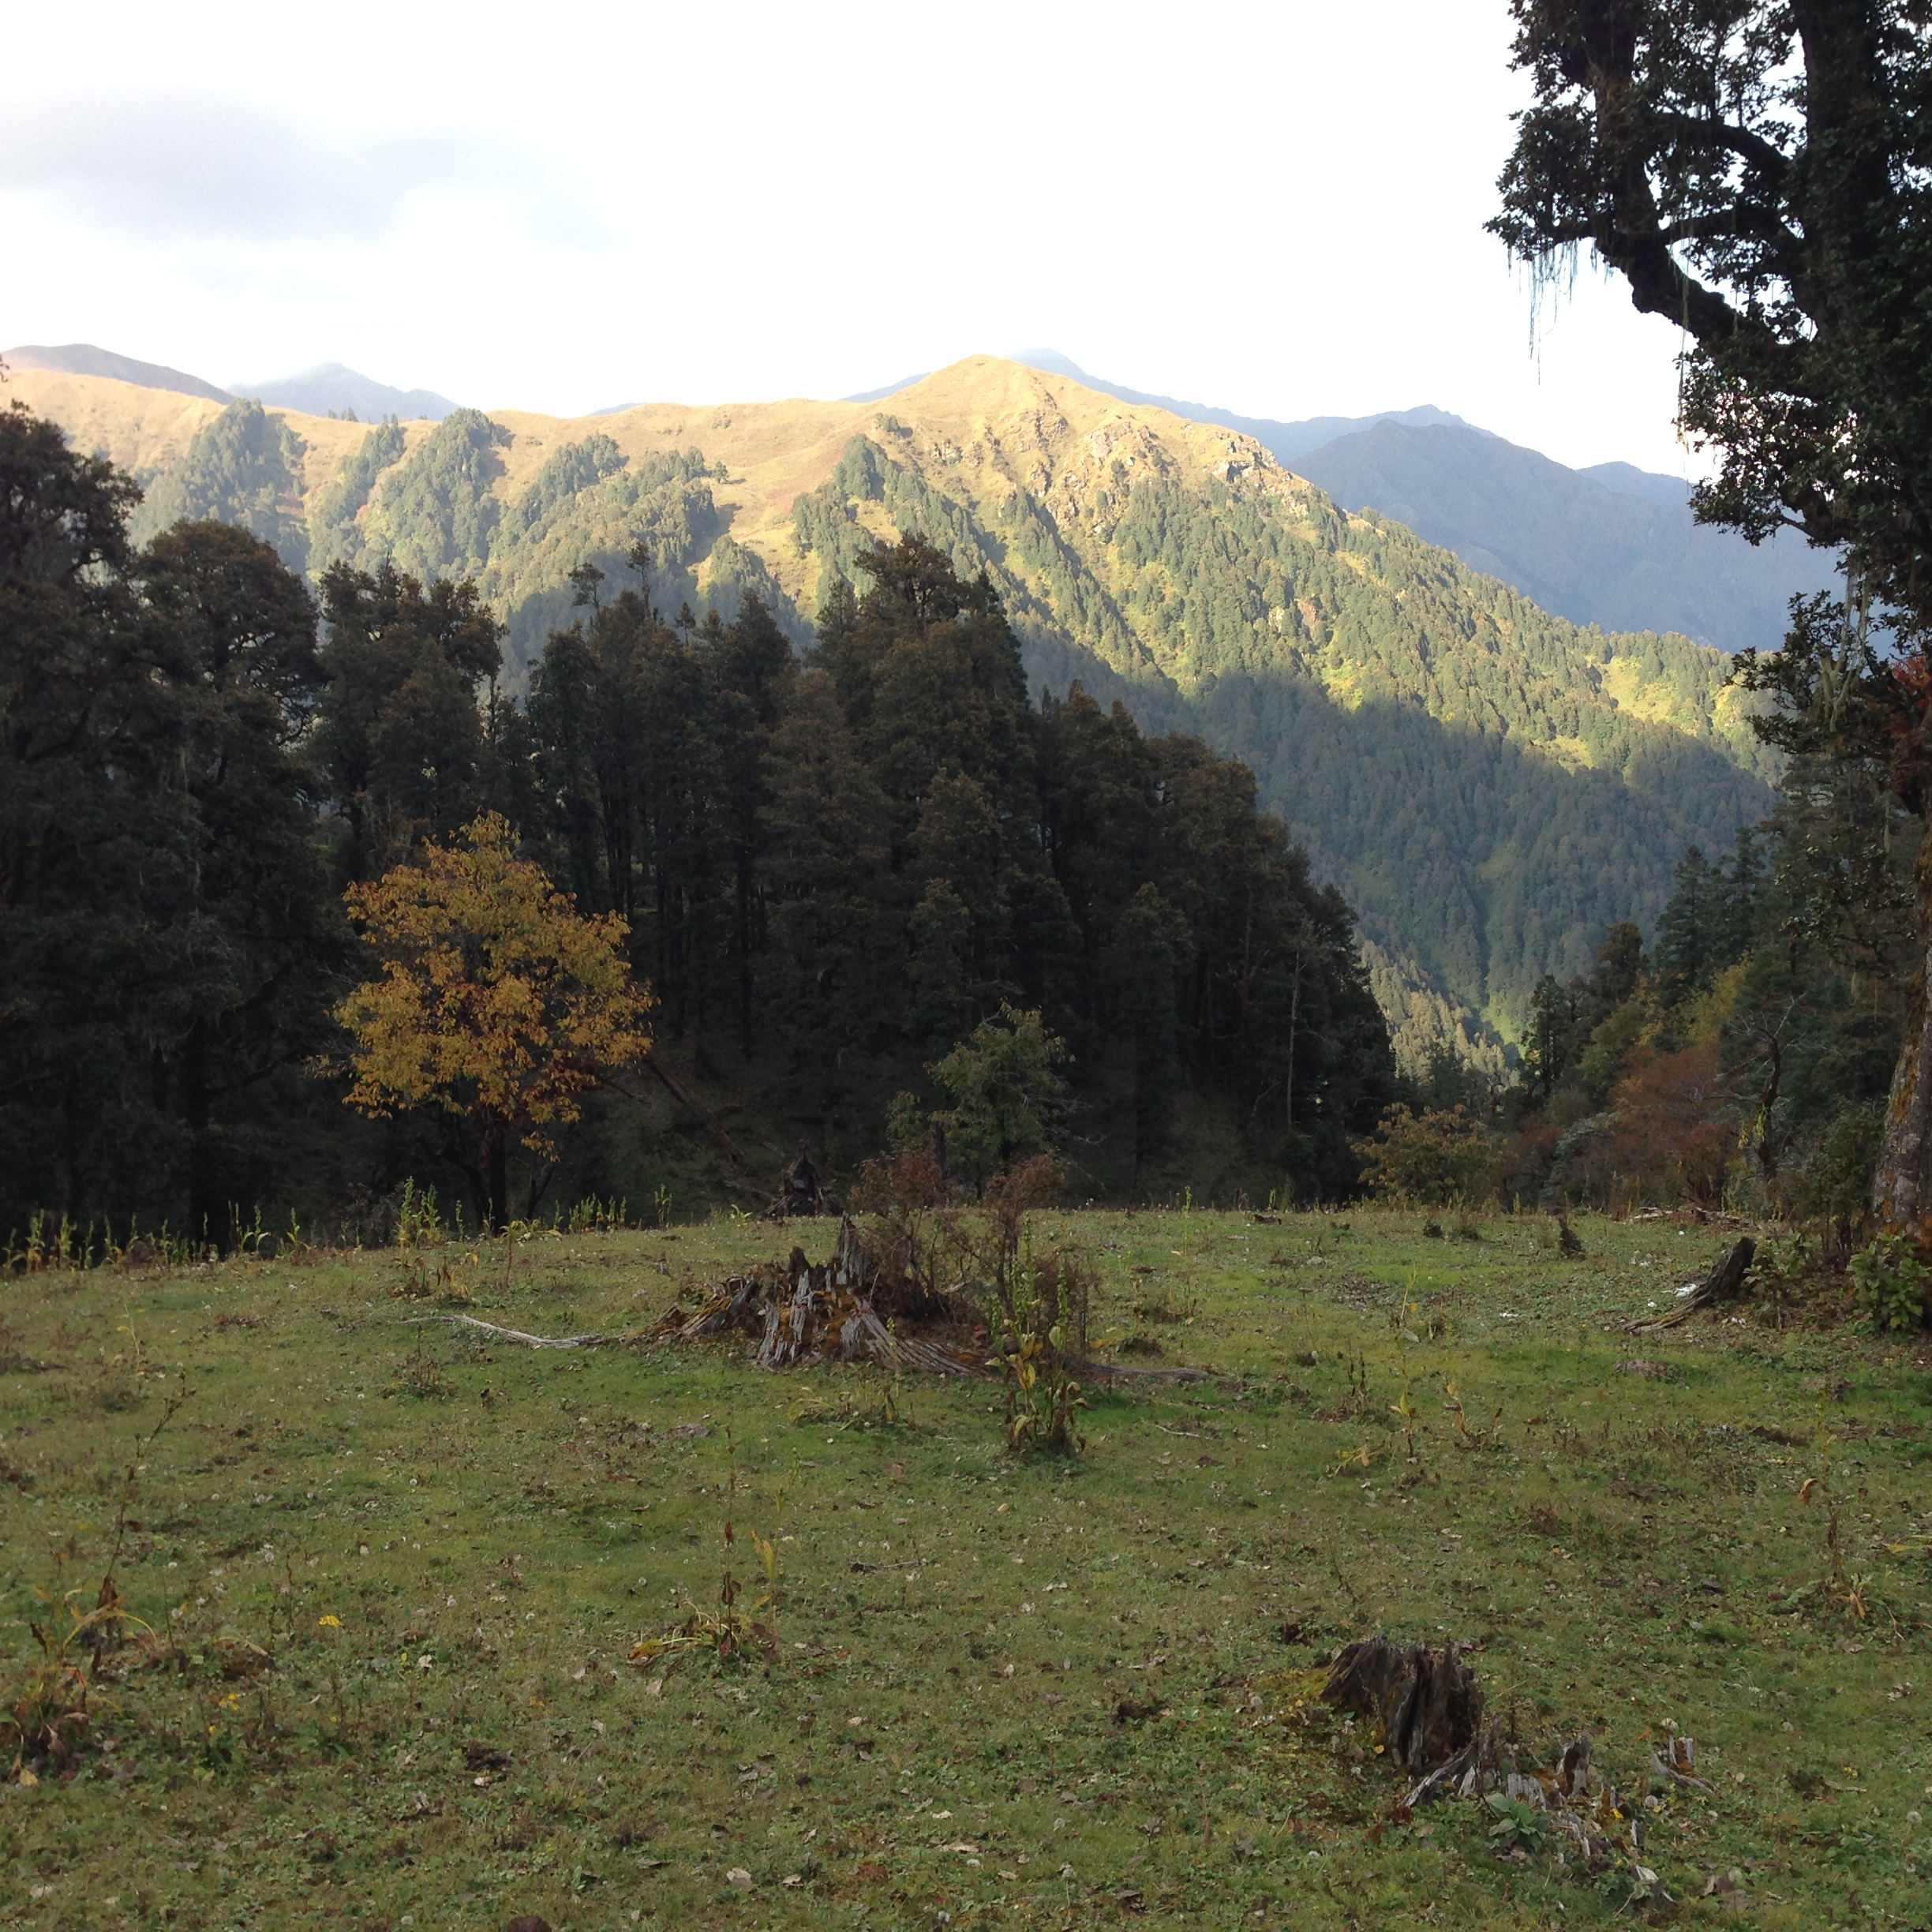 Dayara camp site grassy ground as foreground, tree and mountains as background.